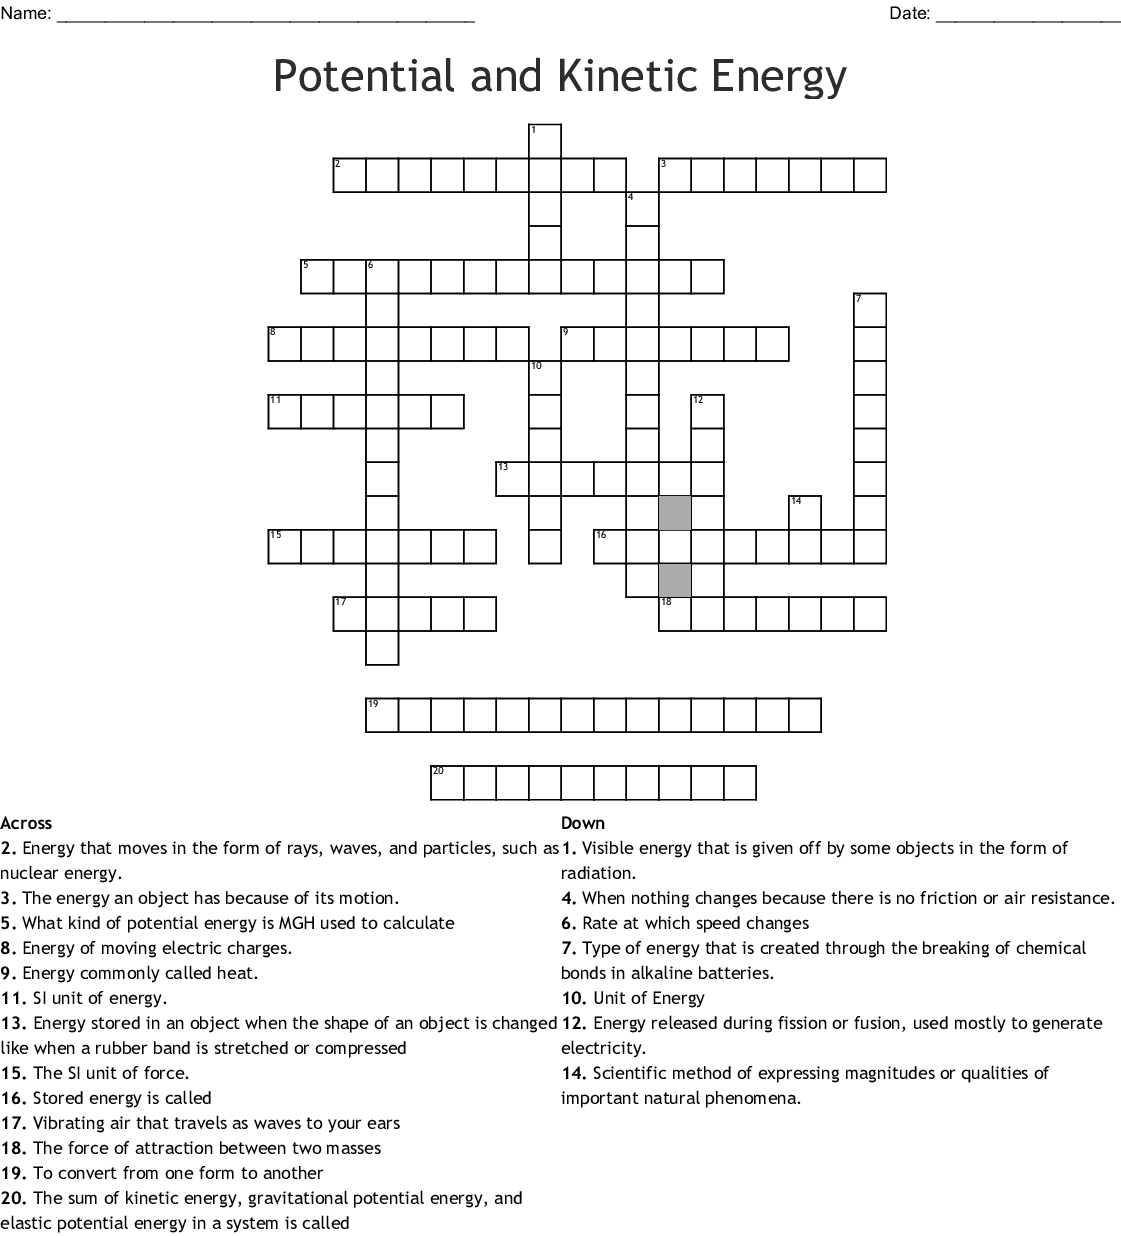 Energy Crossword Puzzle - WordMint